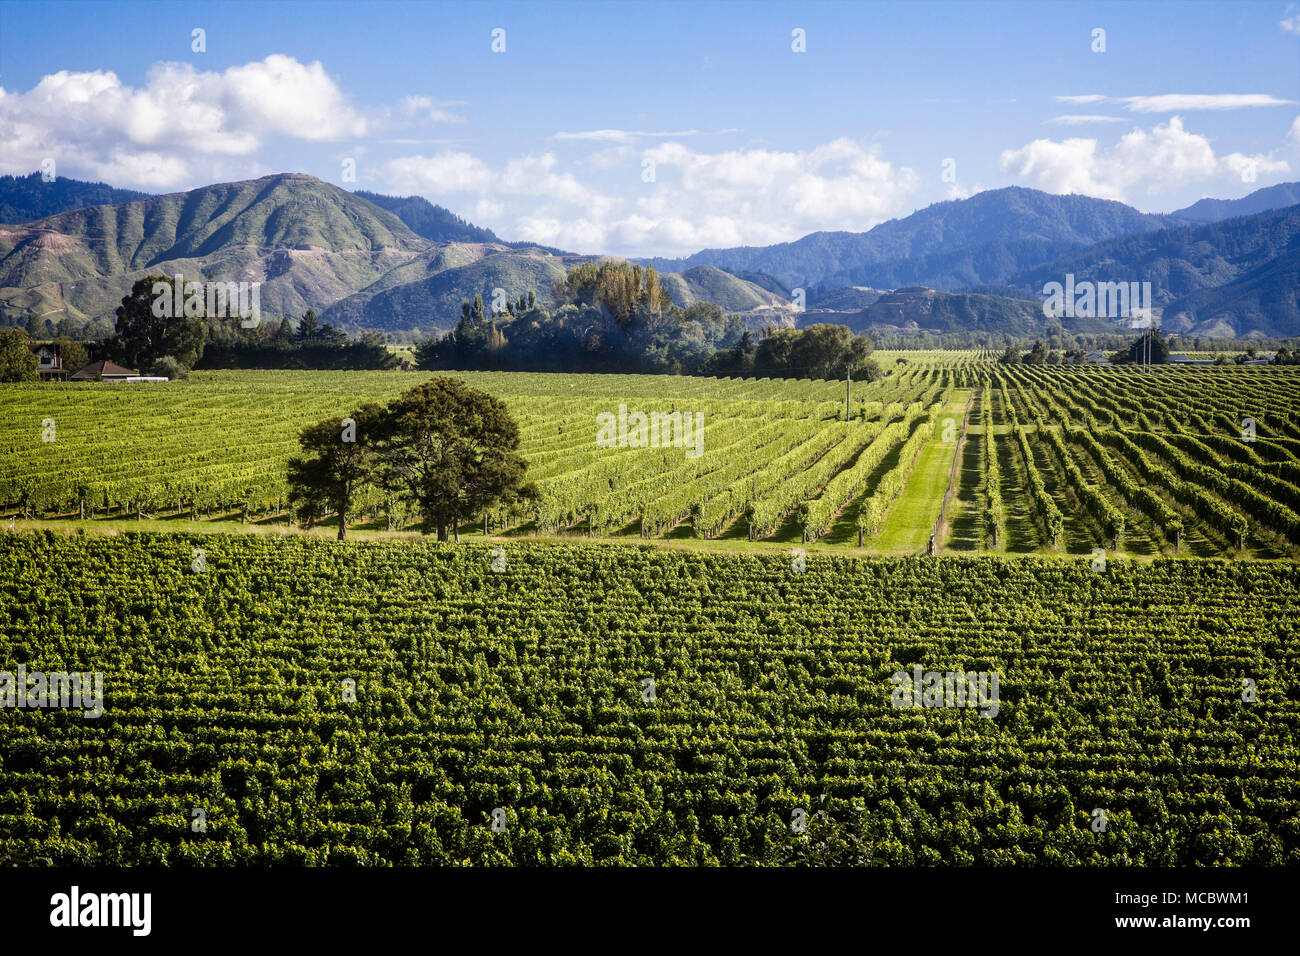 The vineyards of the Marlborough Region, South Island, New Zealand. - Stock Image